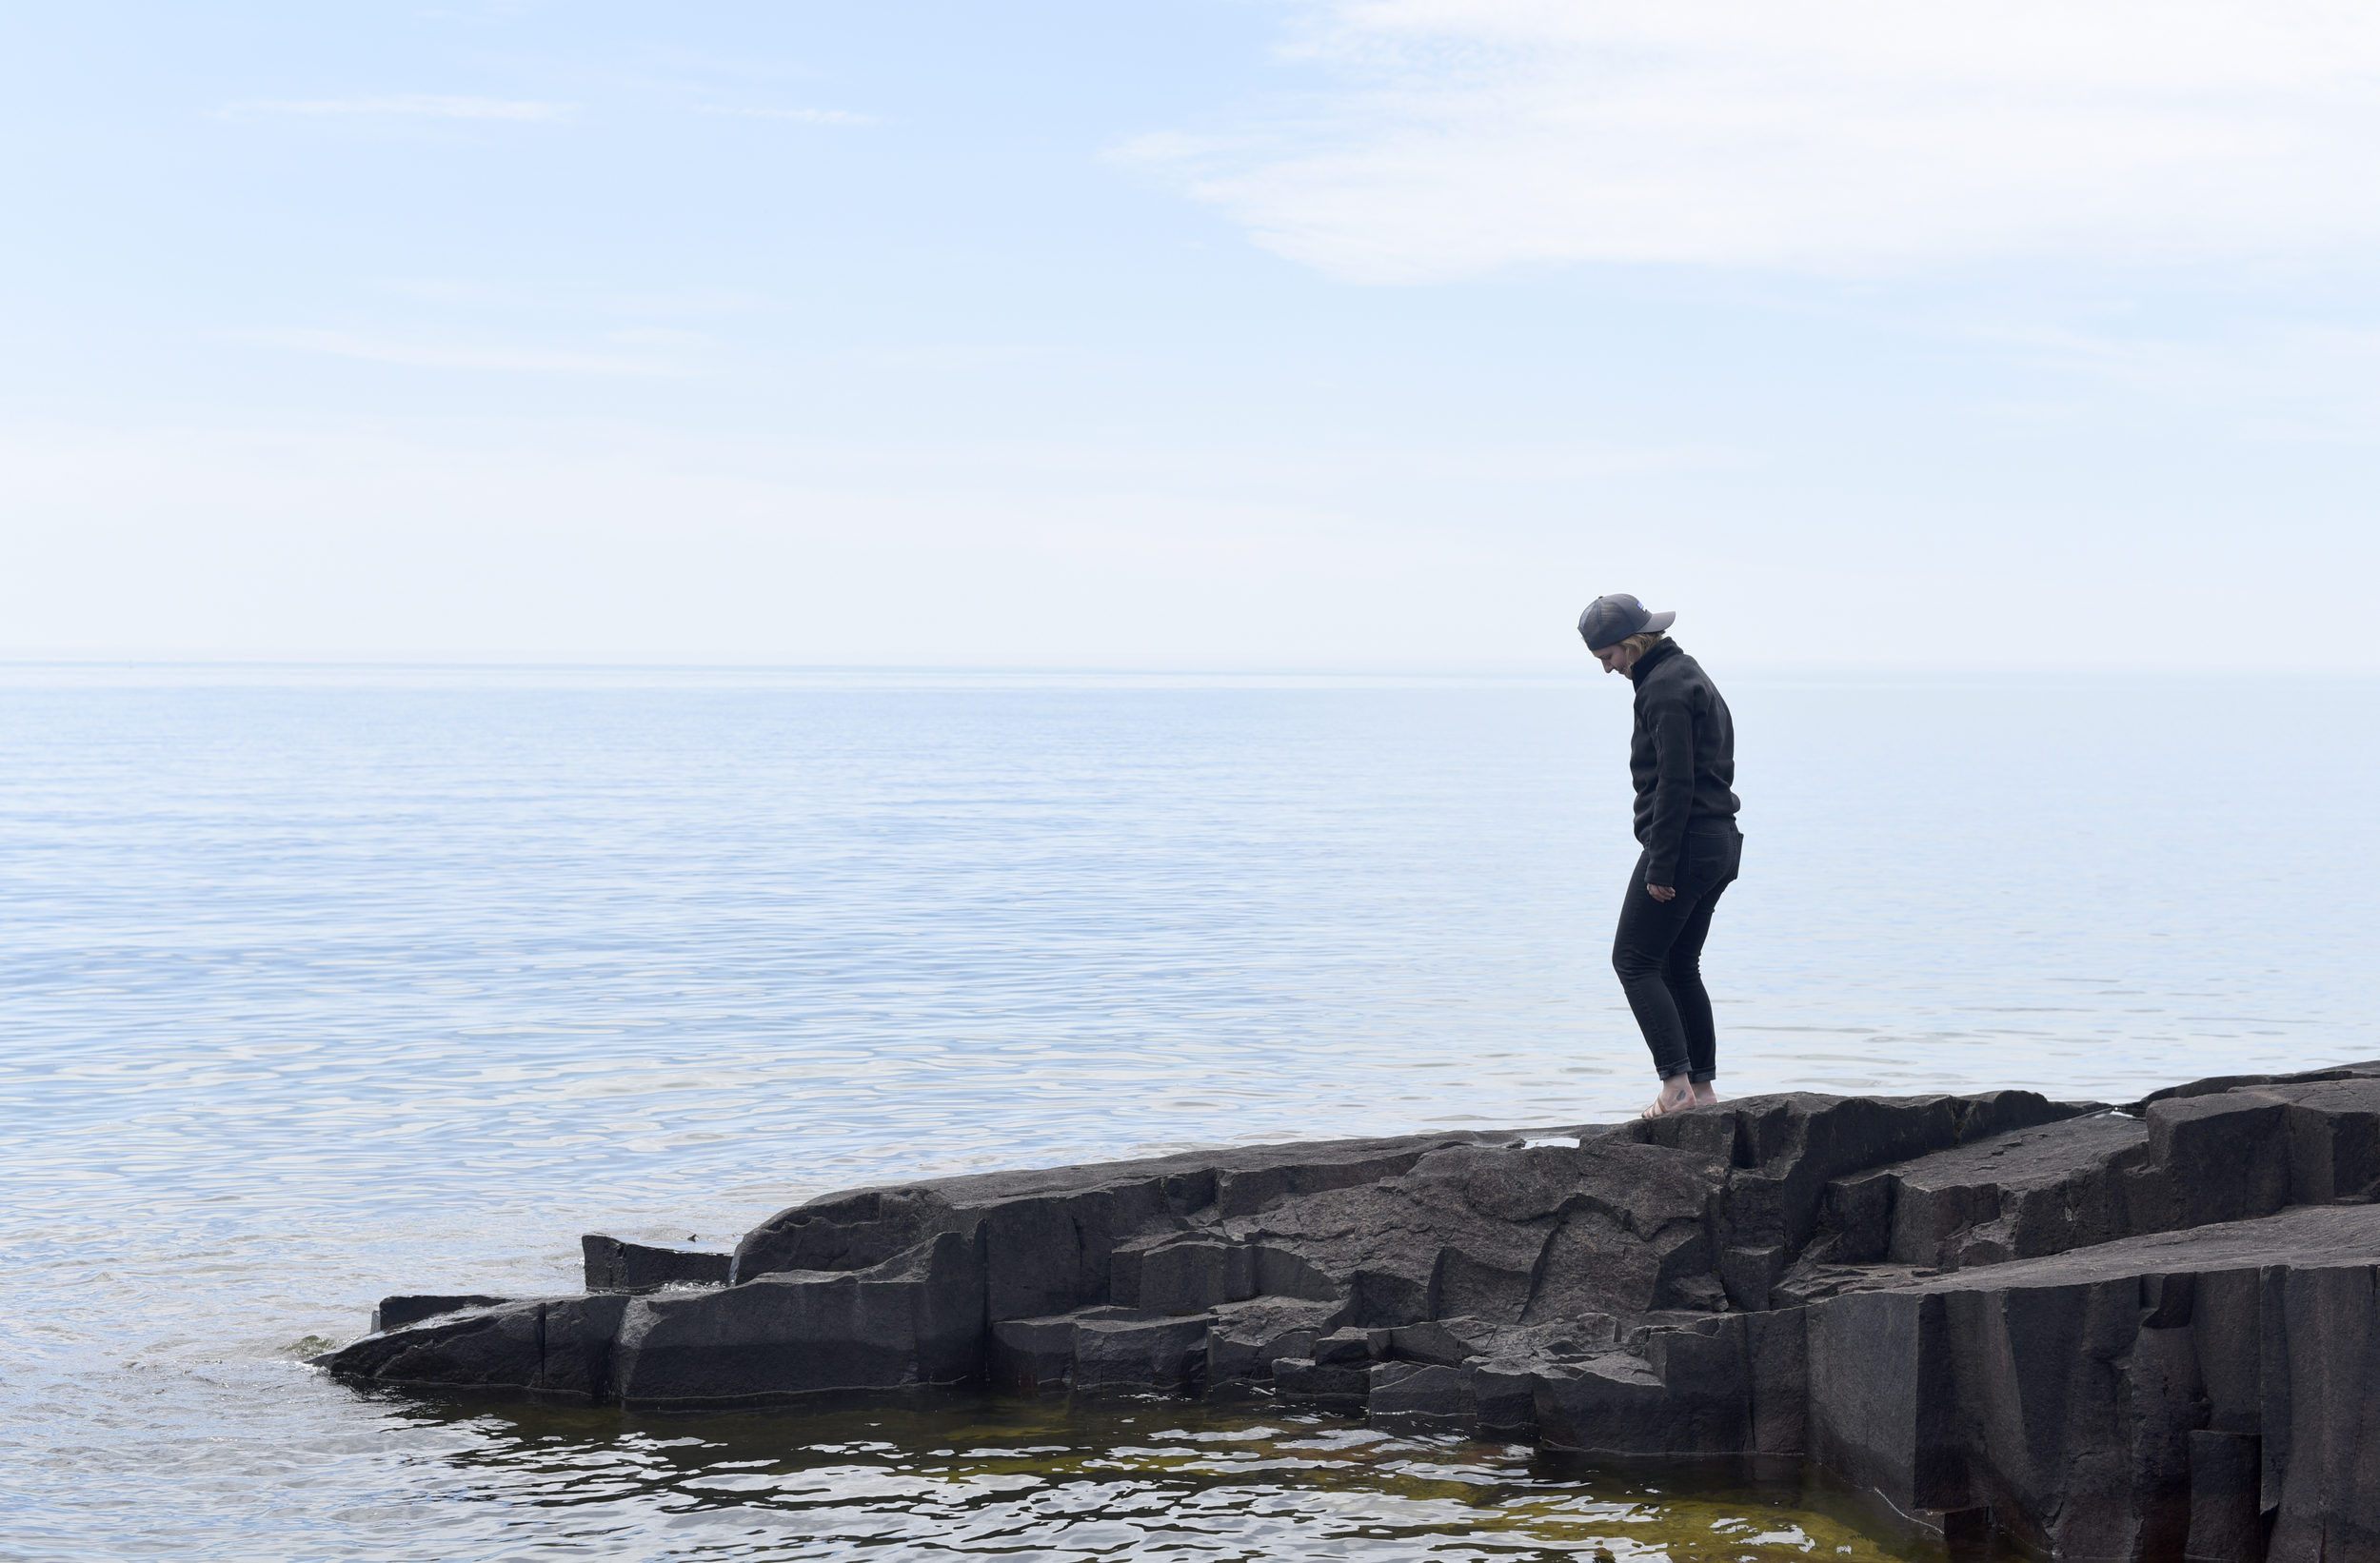 Ayla snapped this photo of me in Grand Marais, Minn.